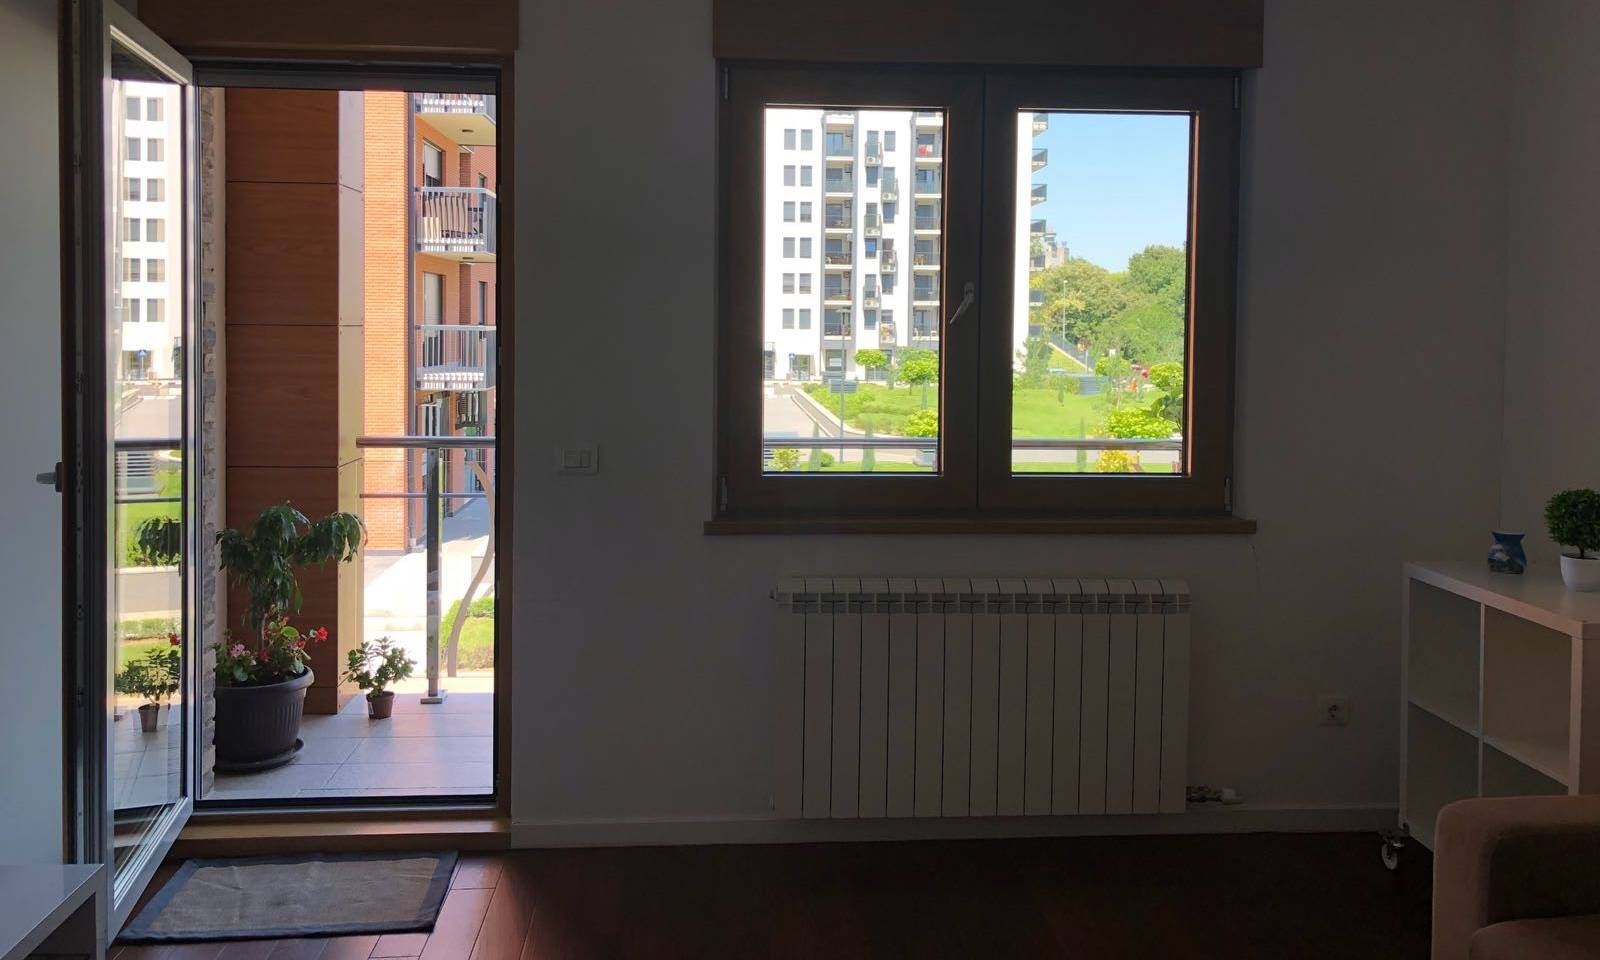 apartment Rango, A Blok Savada, Belgrade